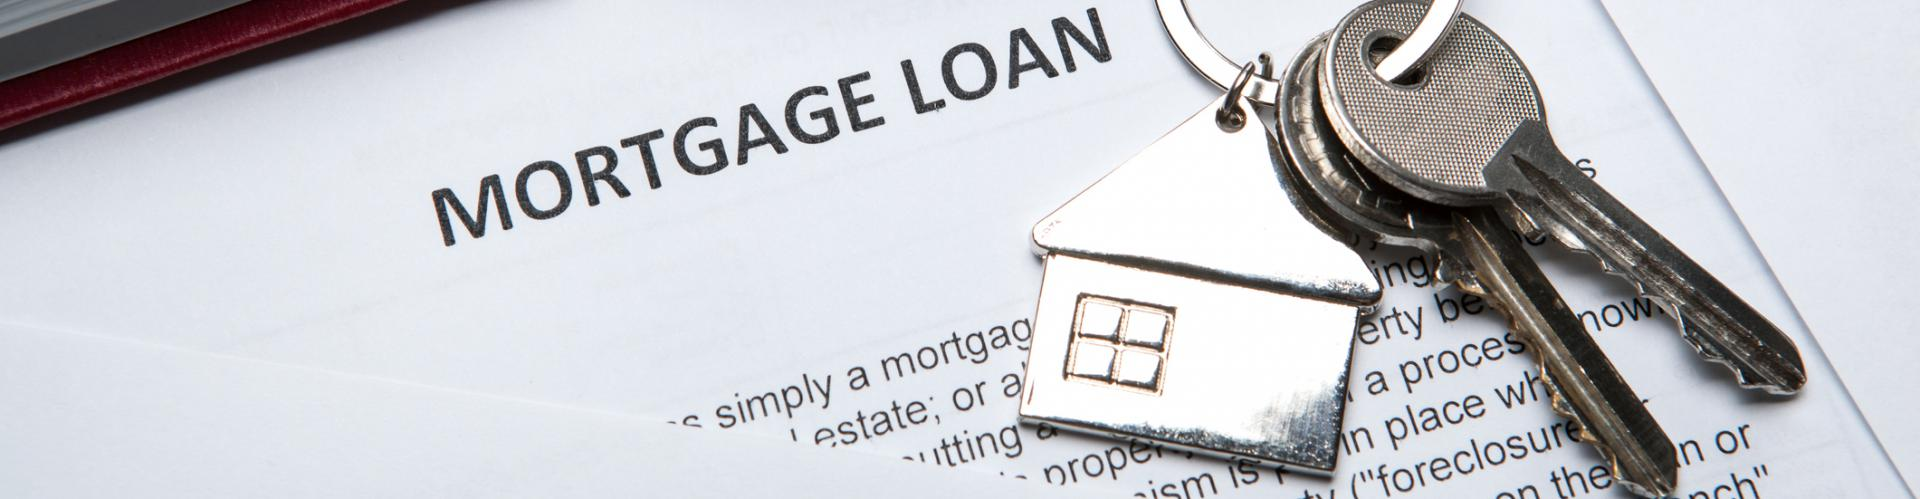 State Home Mortgage Image